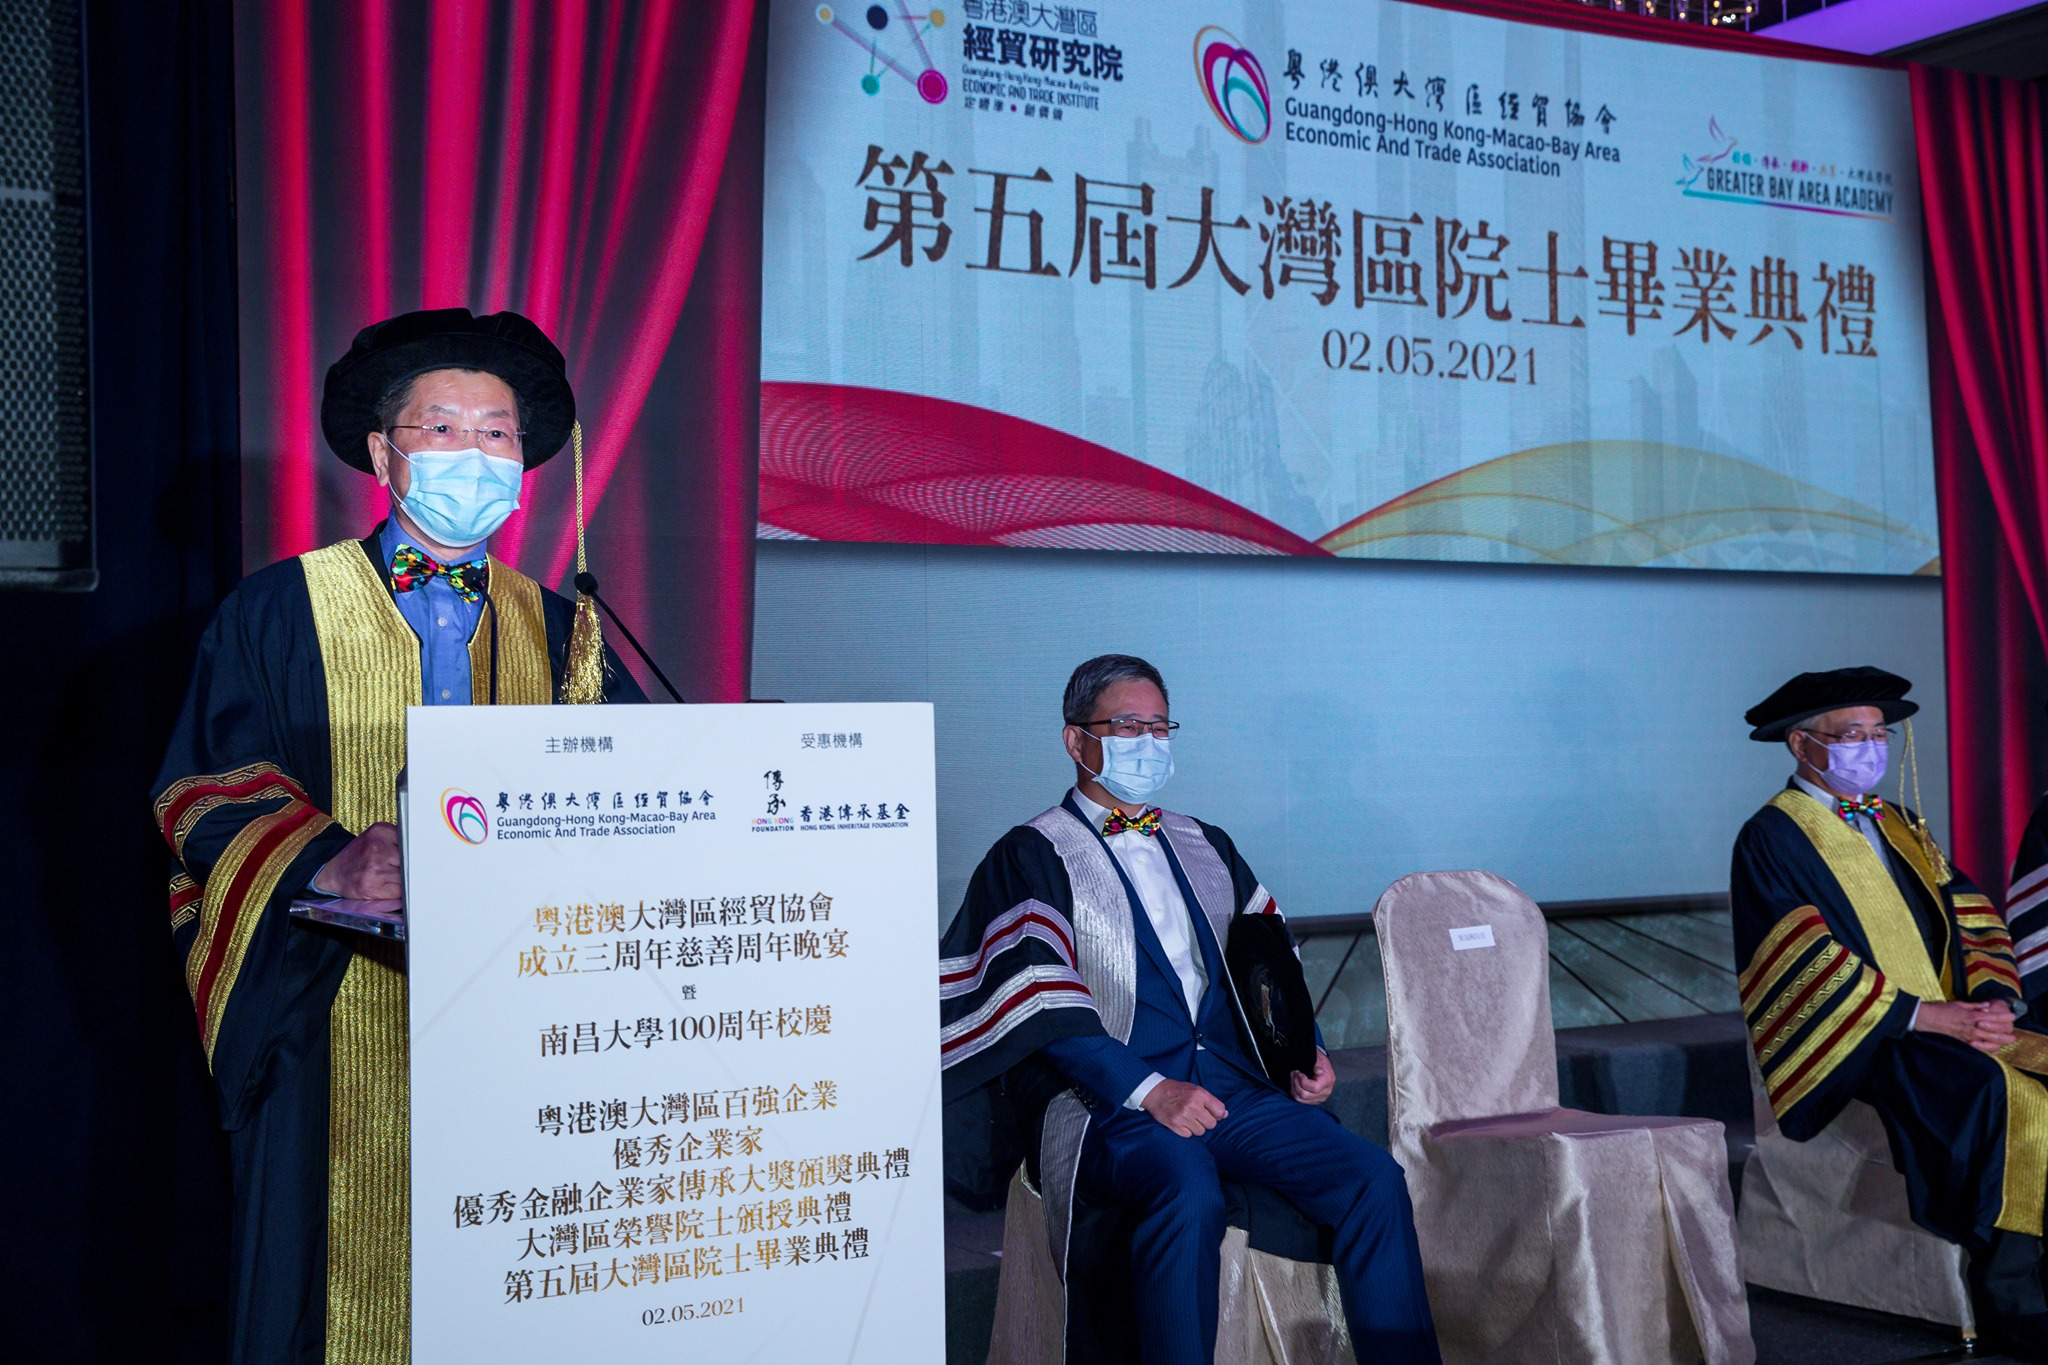 Our Chairman Peter Yip was invited to join GBA Fellow Graduation 2021